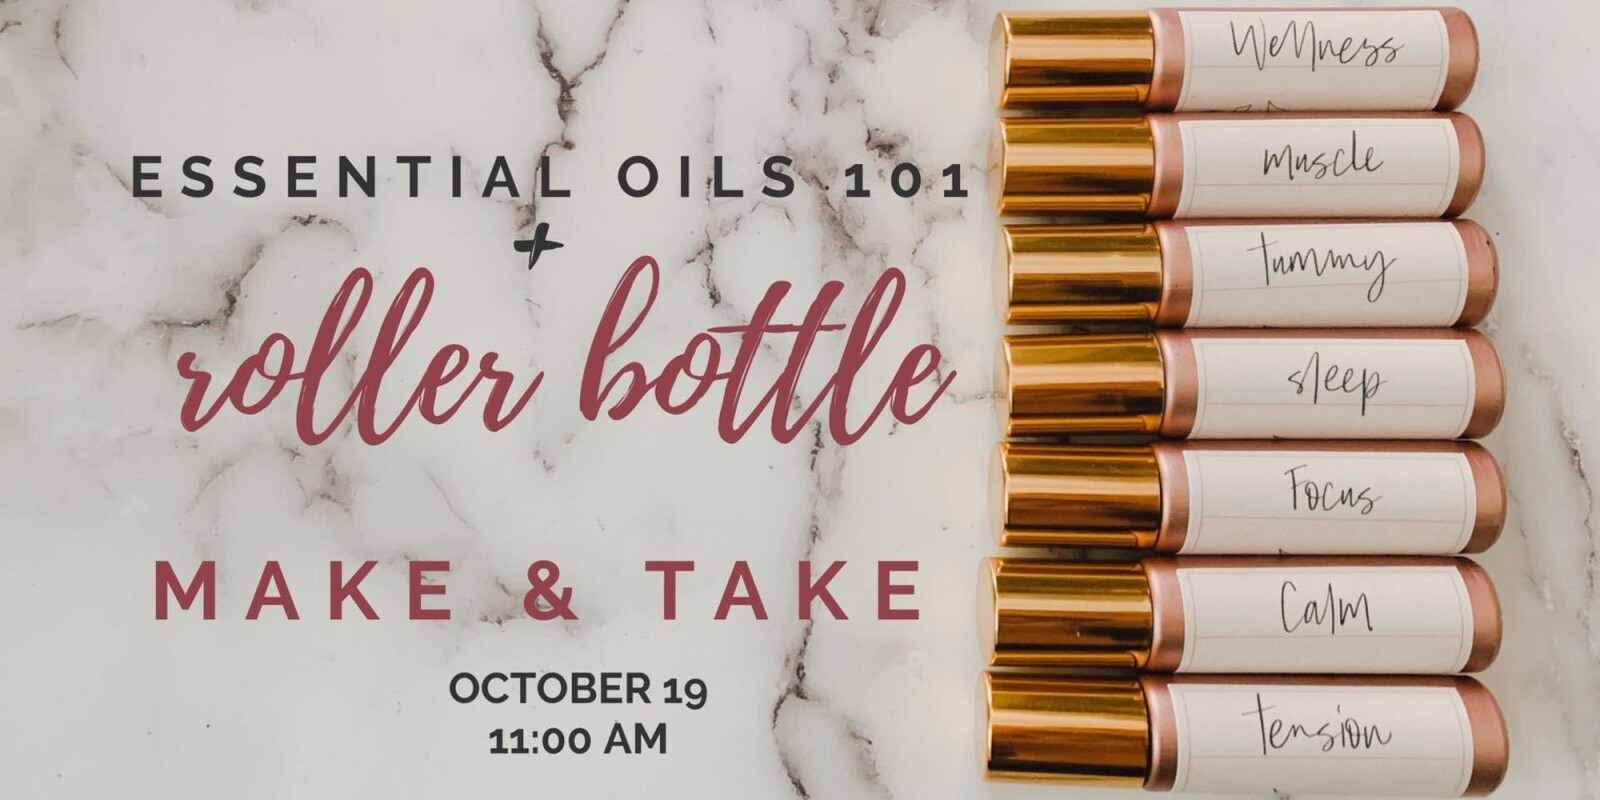 Essential Oils 101 + Roller Bottle Make & Take